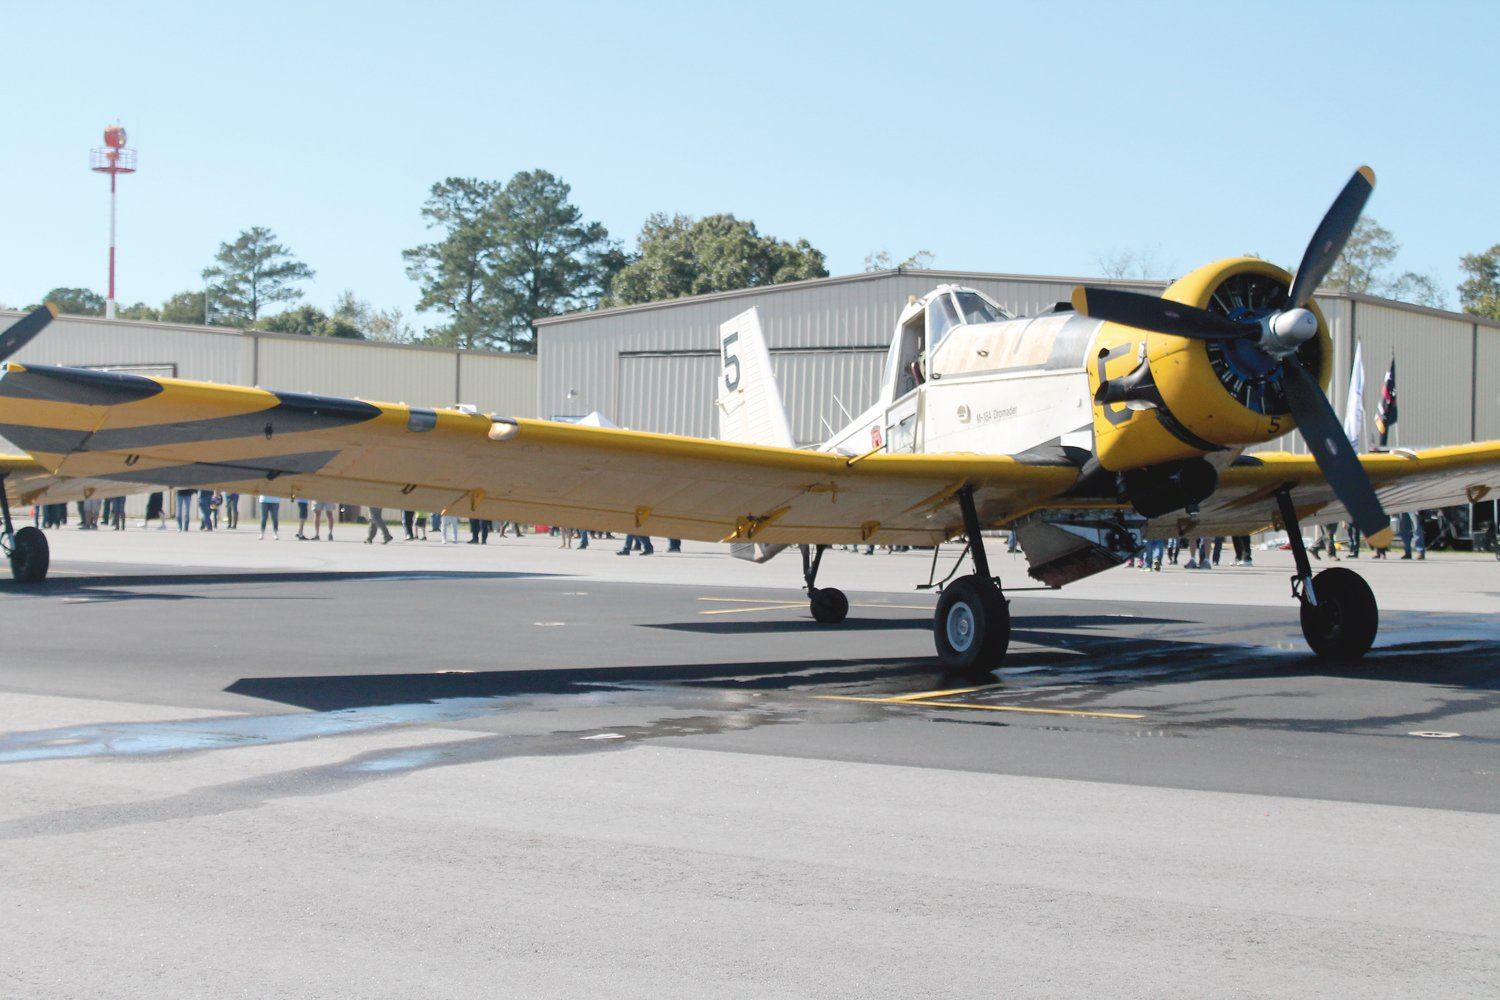 An airplane is on display at a Wings Over Harnett air show and open house in 2015 at the Harnett County Jetport.